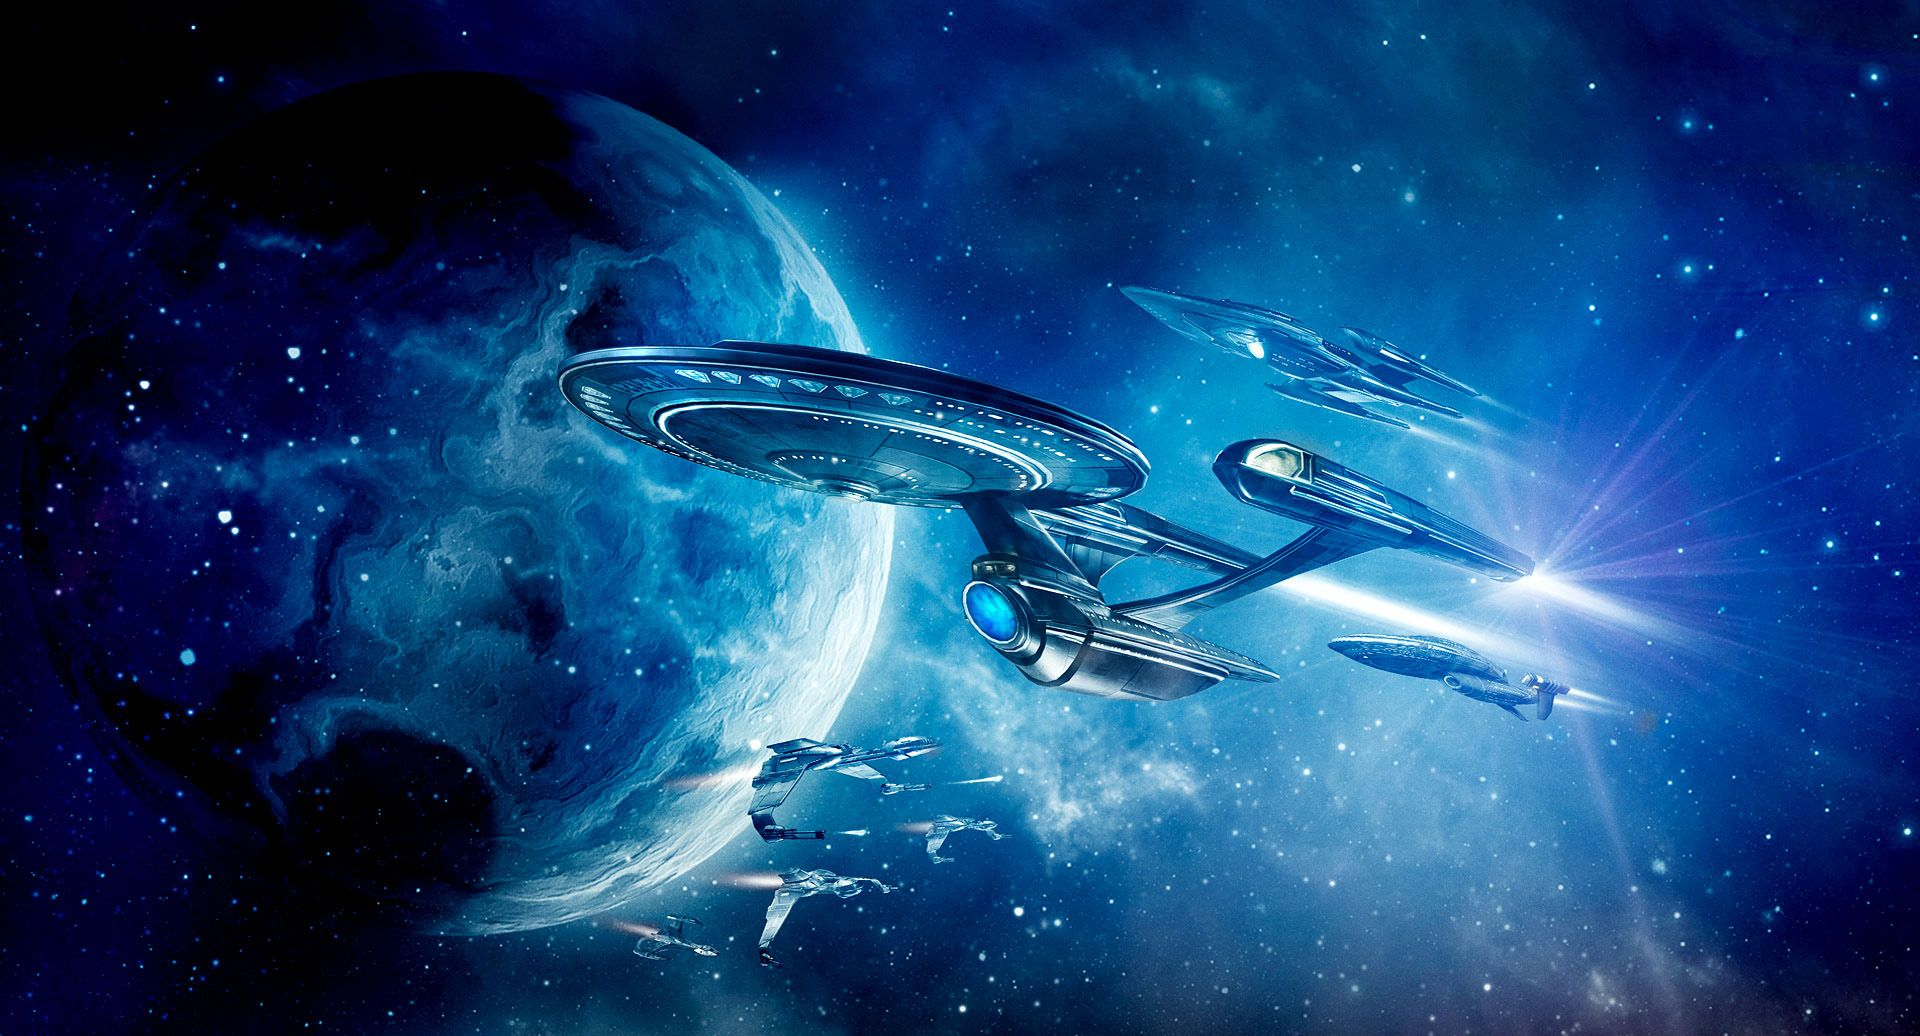 Star Trek Online HD Wallpapers and Backgrounds Нло